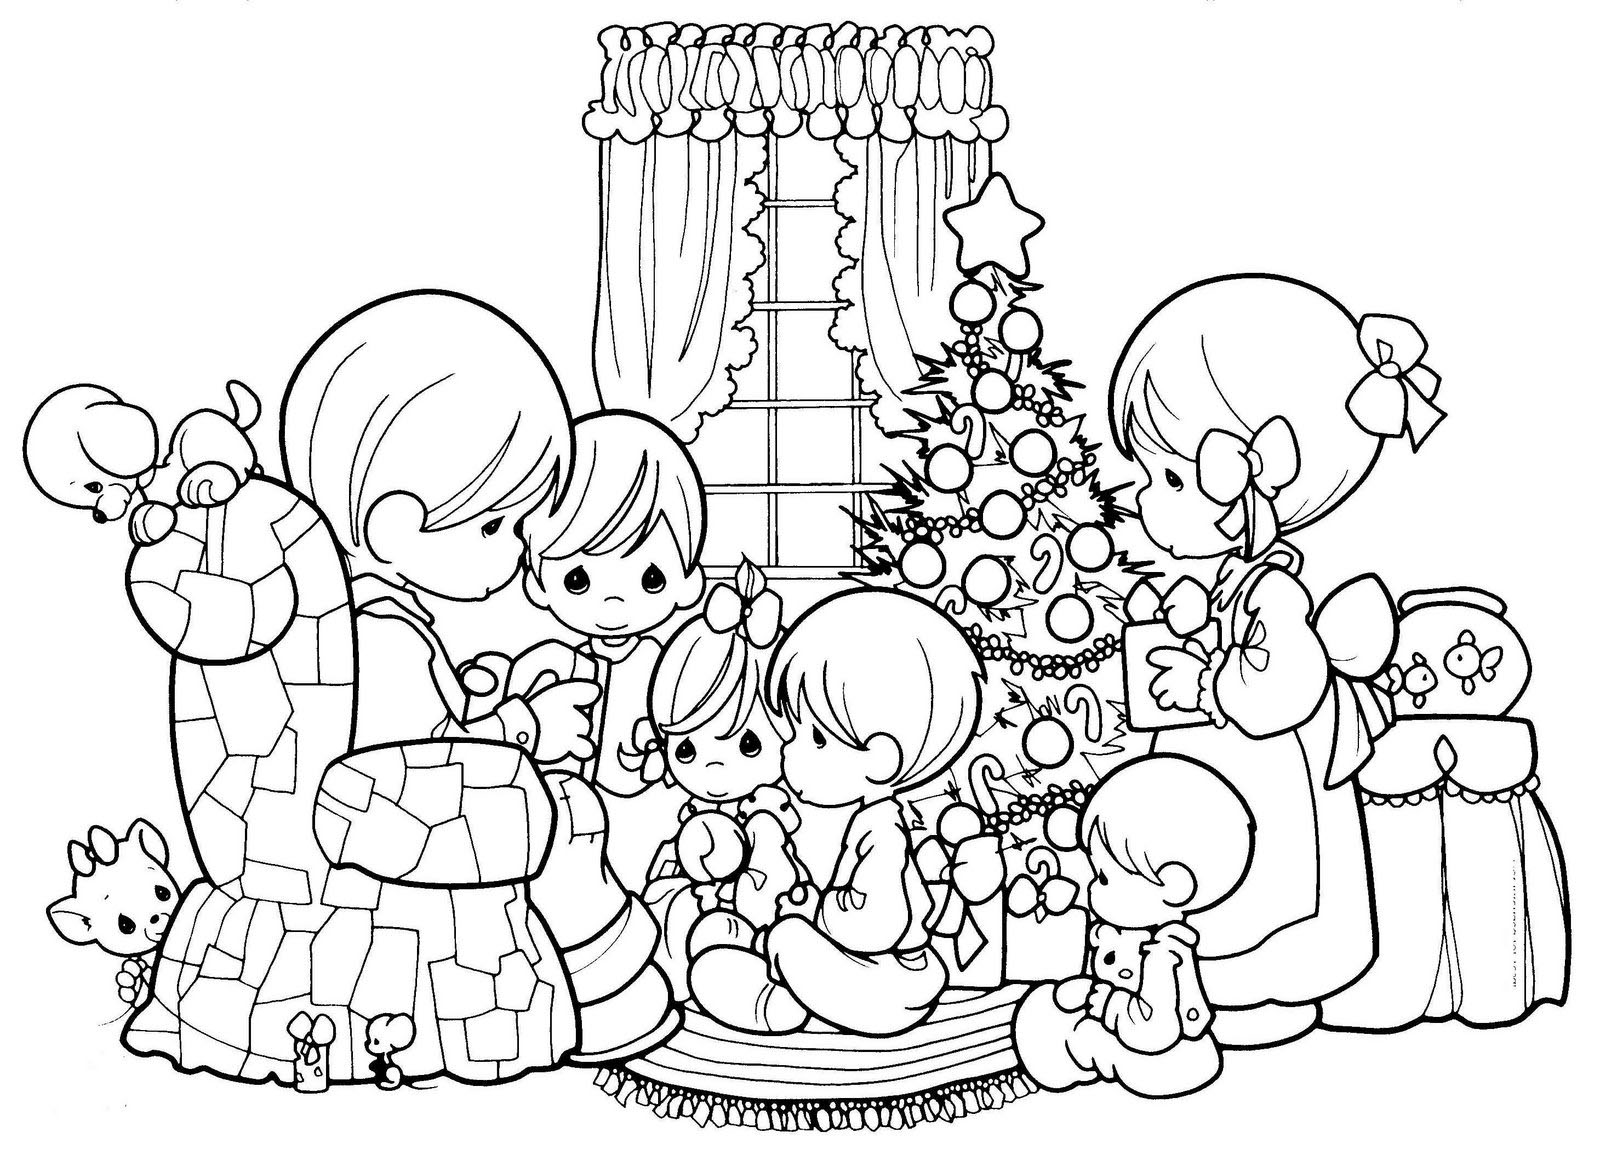 Precious moments - Return to childhood Adult Coloring Pages